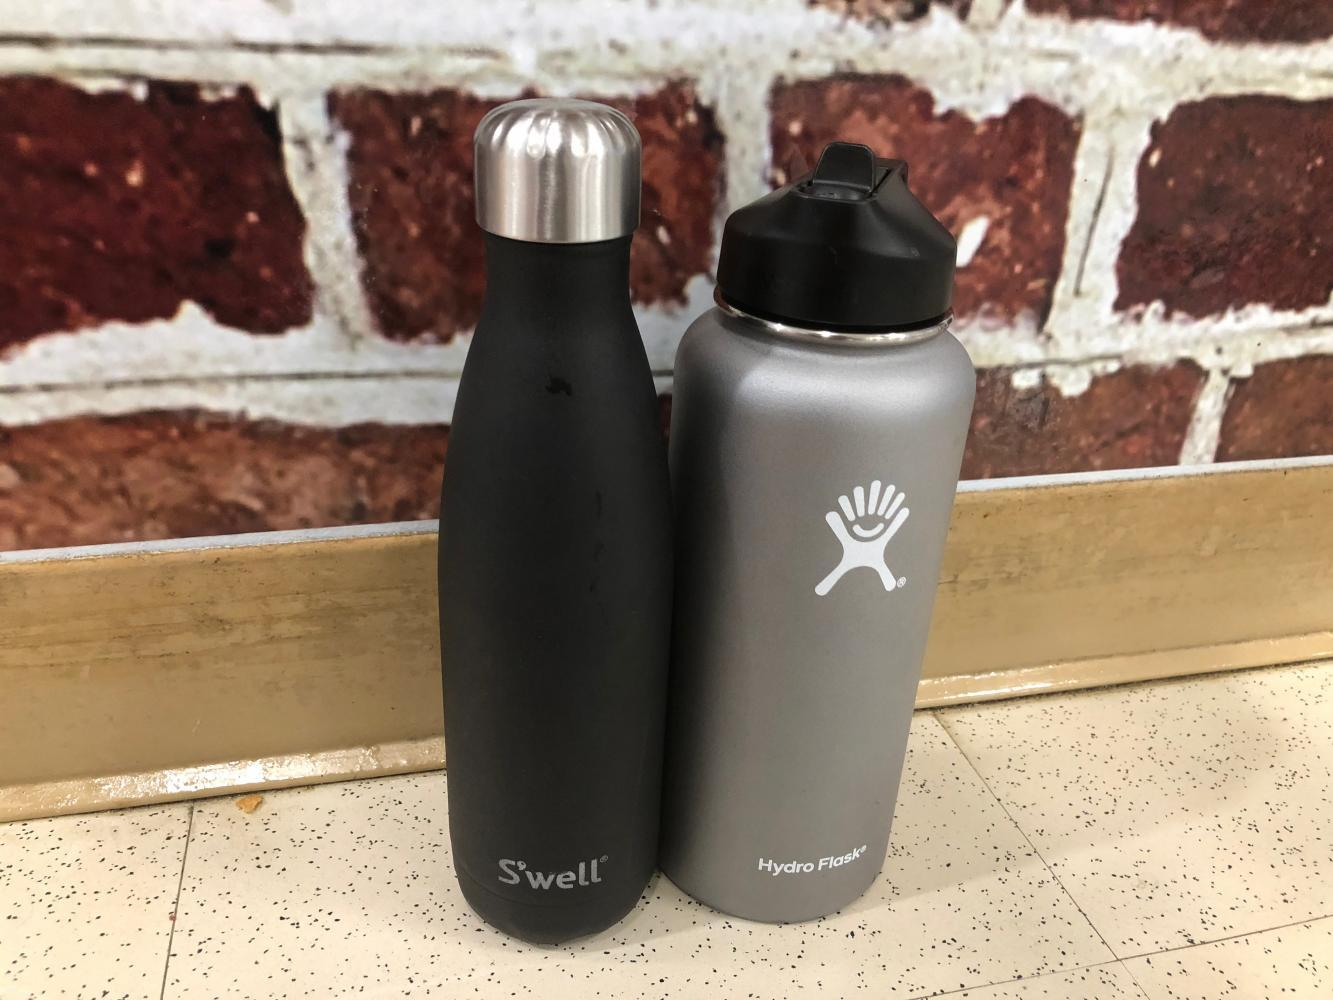 Hydro Flask vs. S'well: which bottle is best?